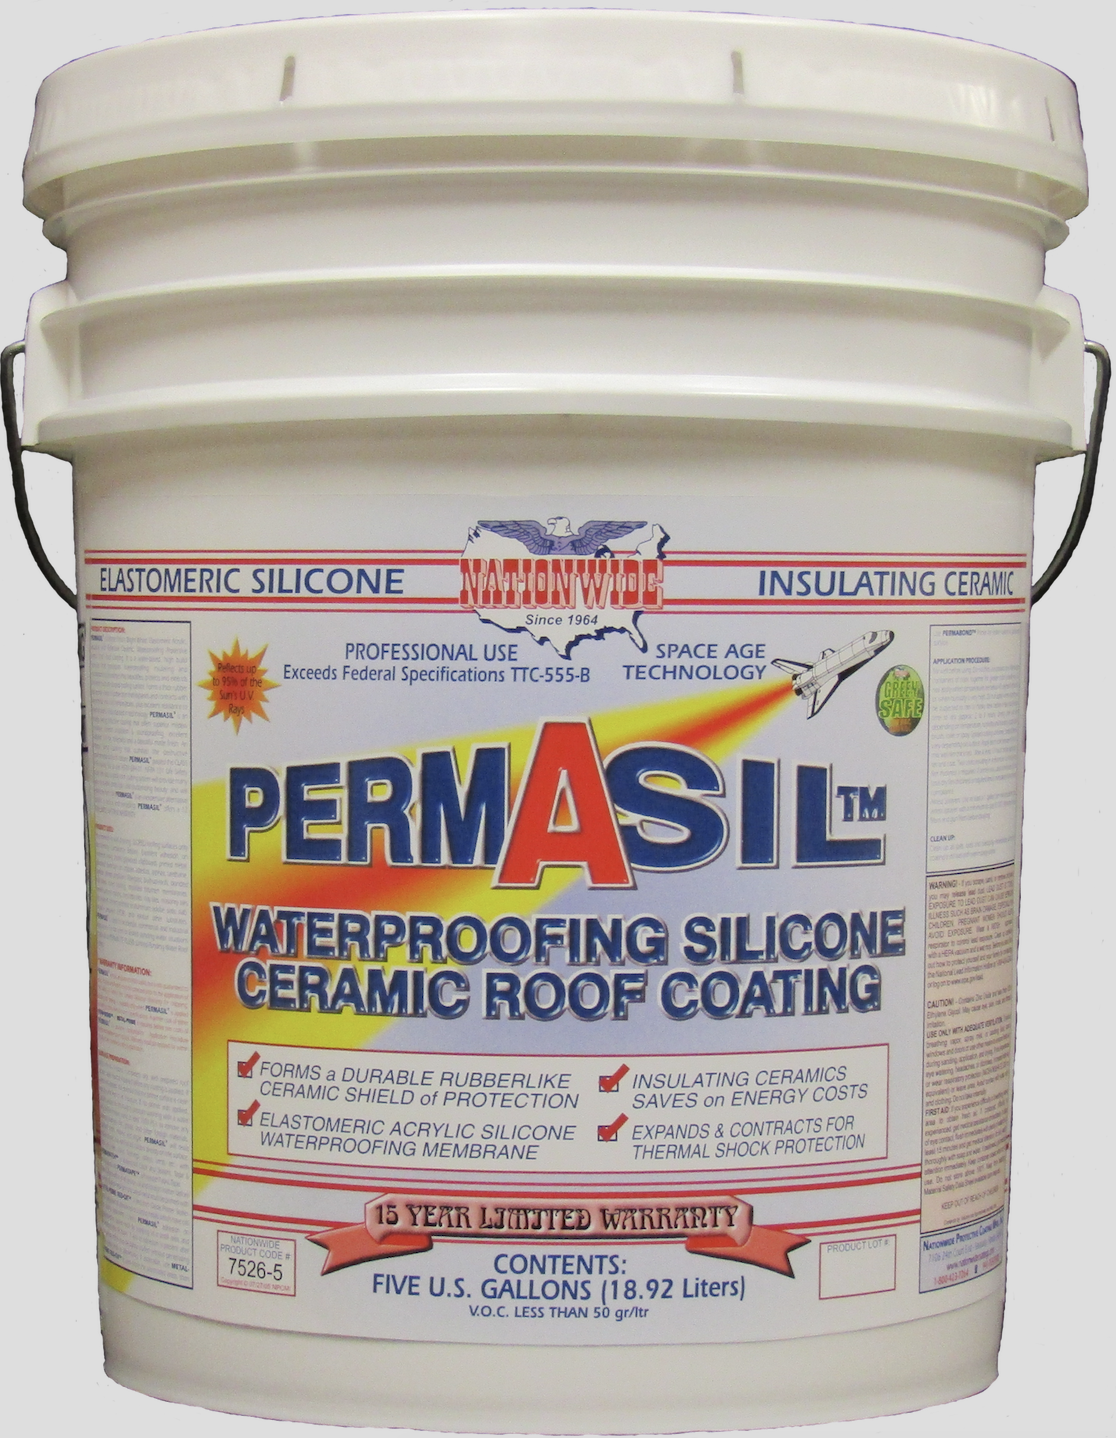 New Elastomeric Acrylic Silicone Waterproofing Roof Coating